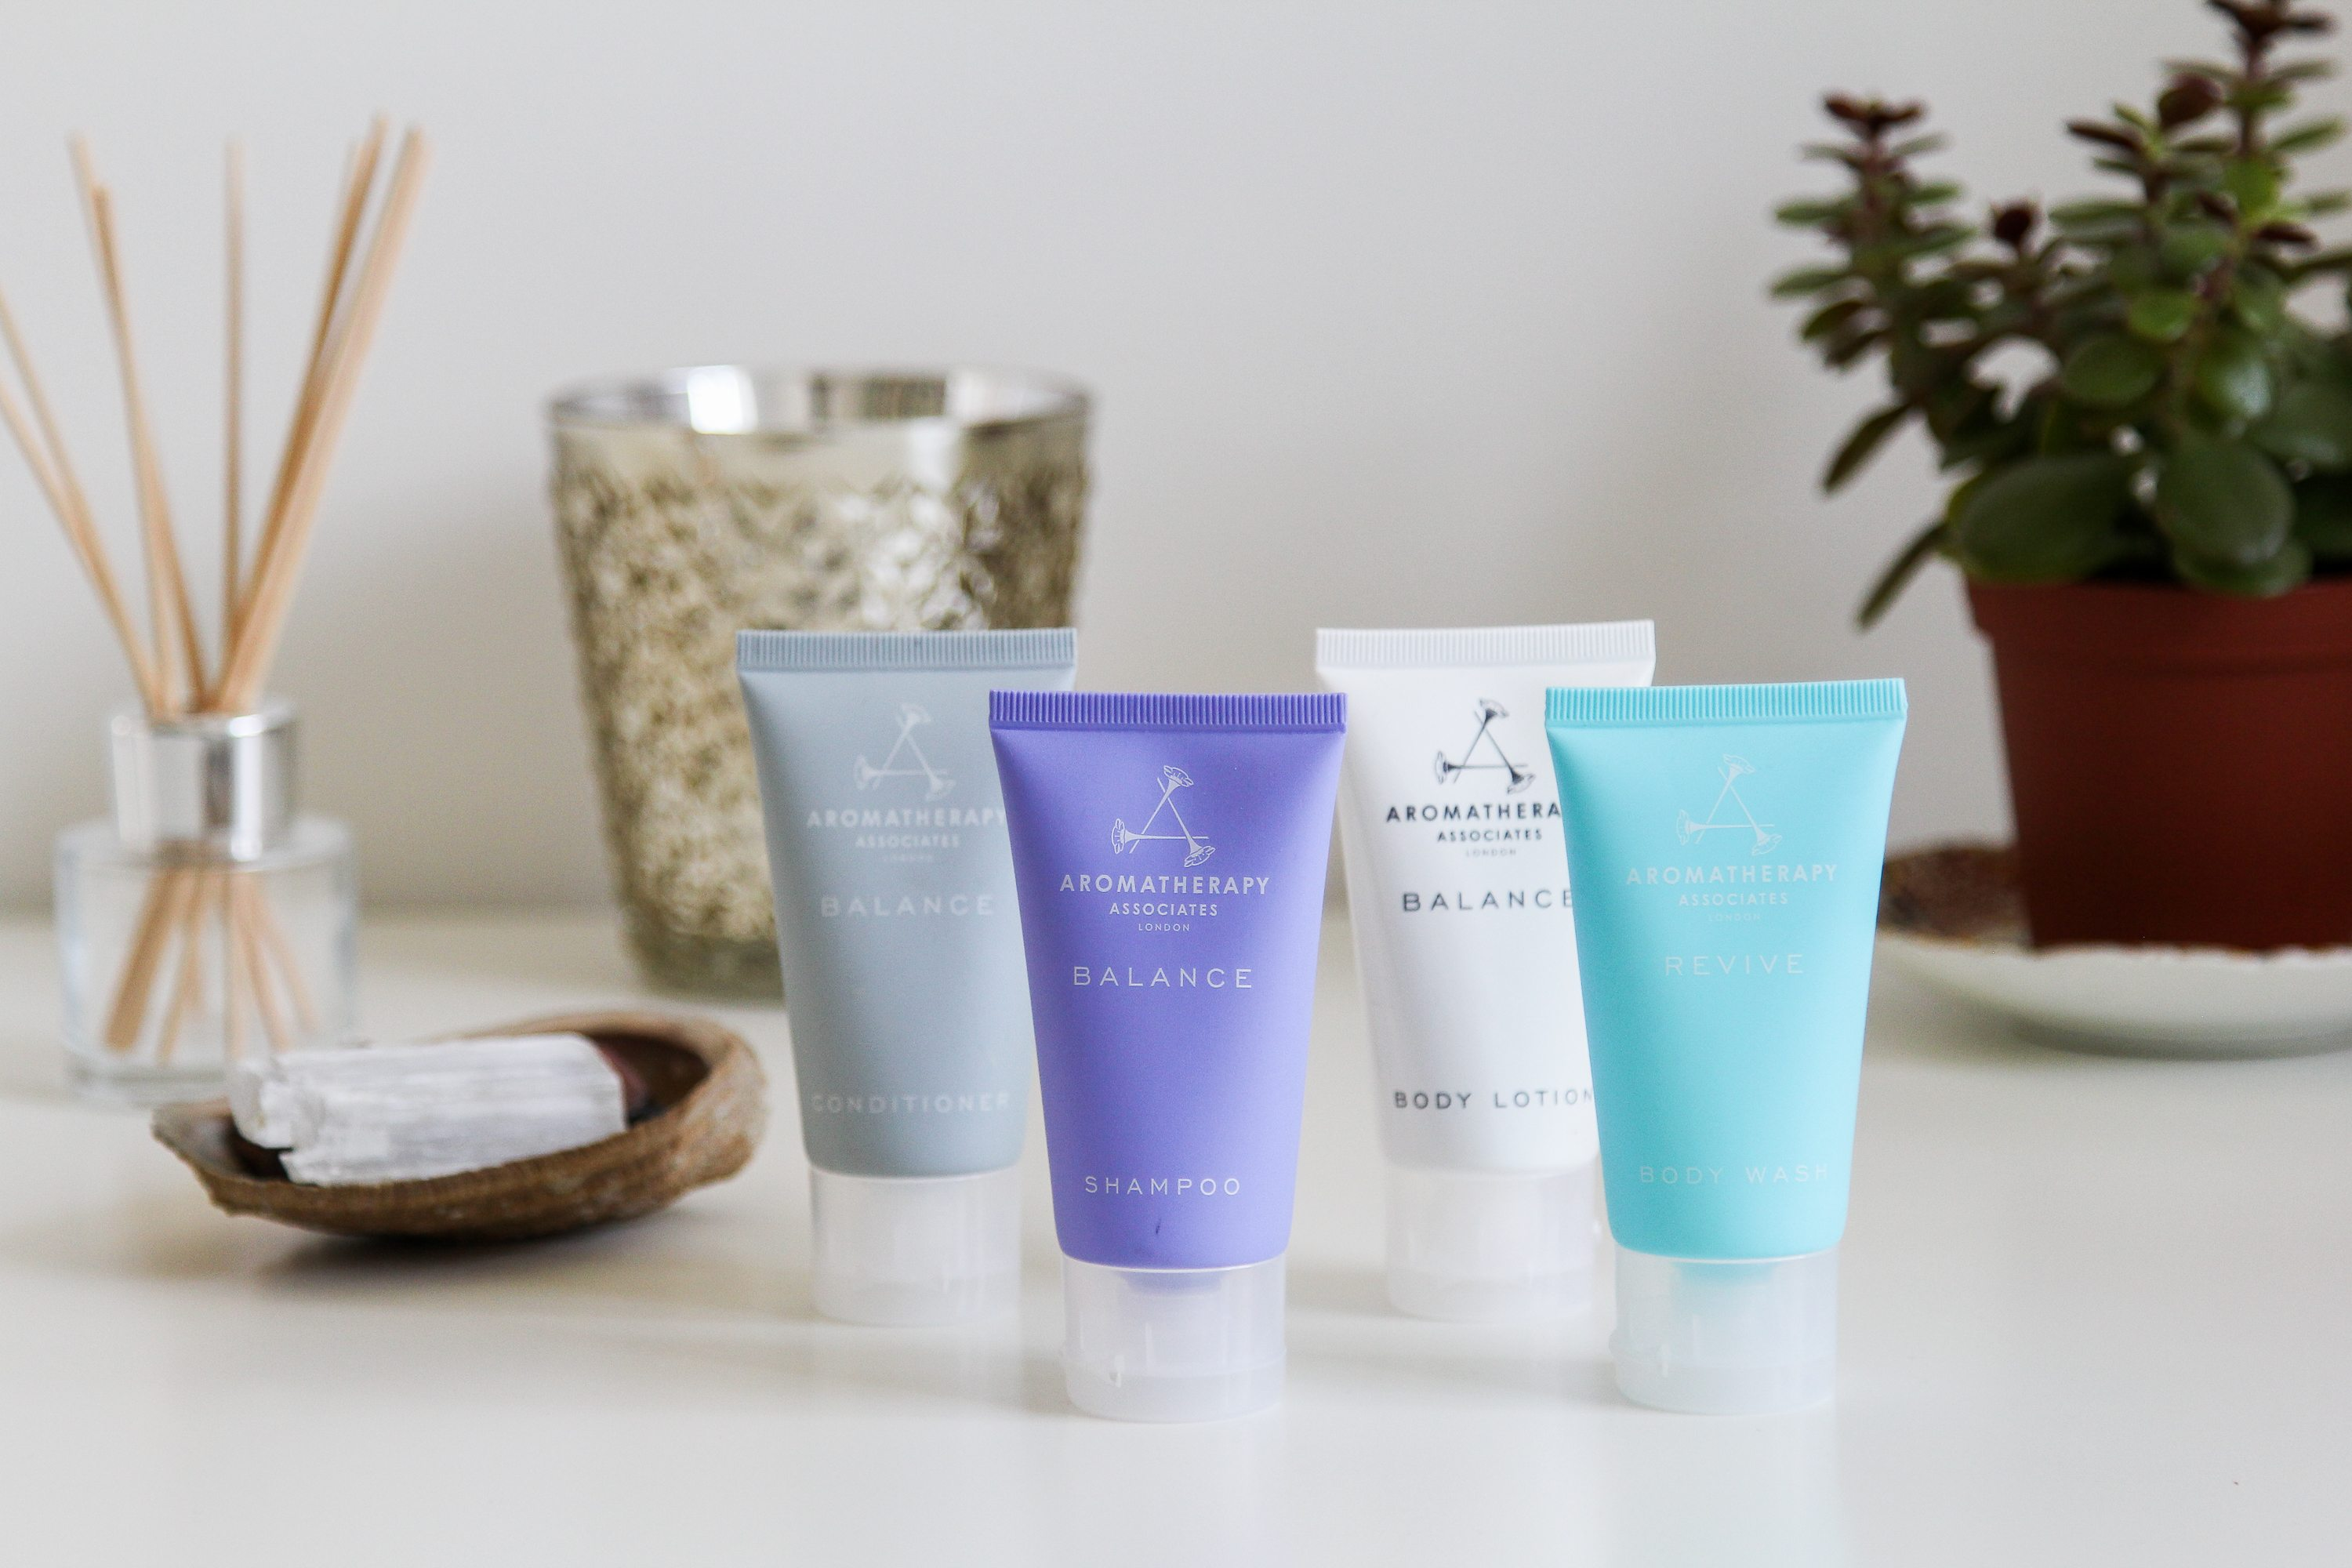 Aromatherapy Associates Beauty